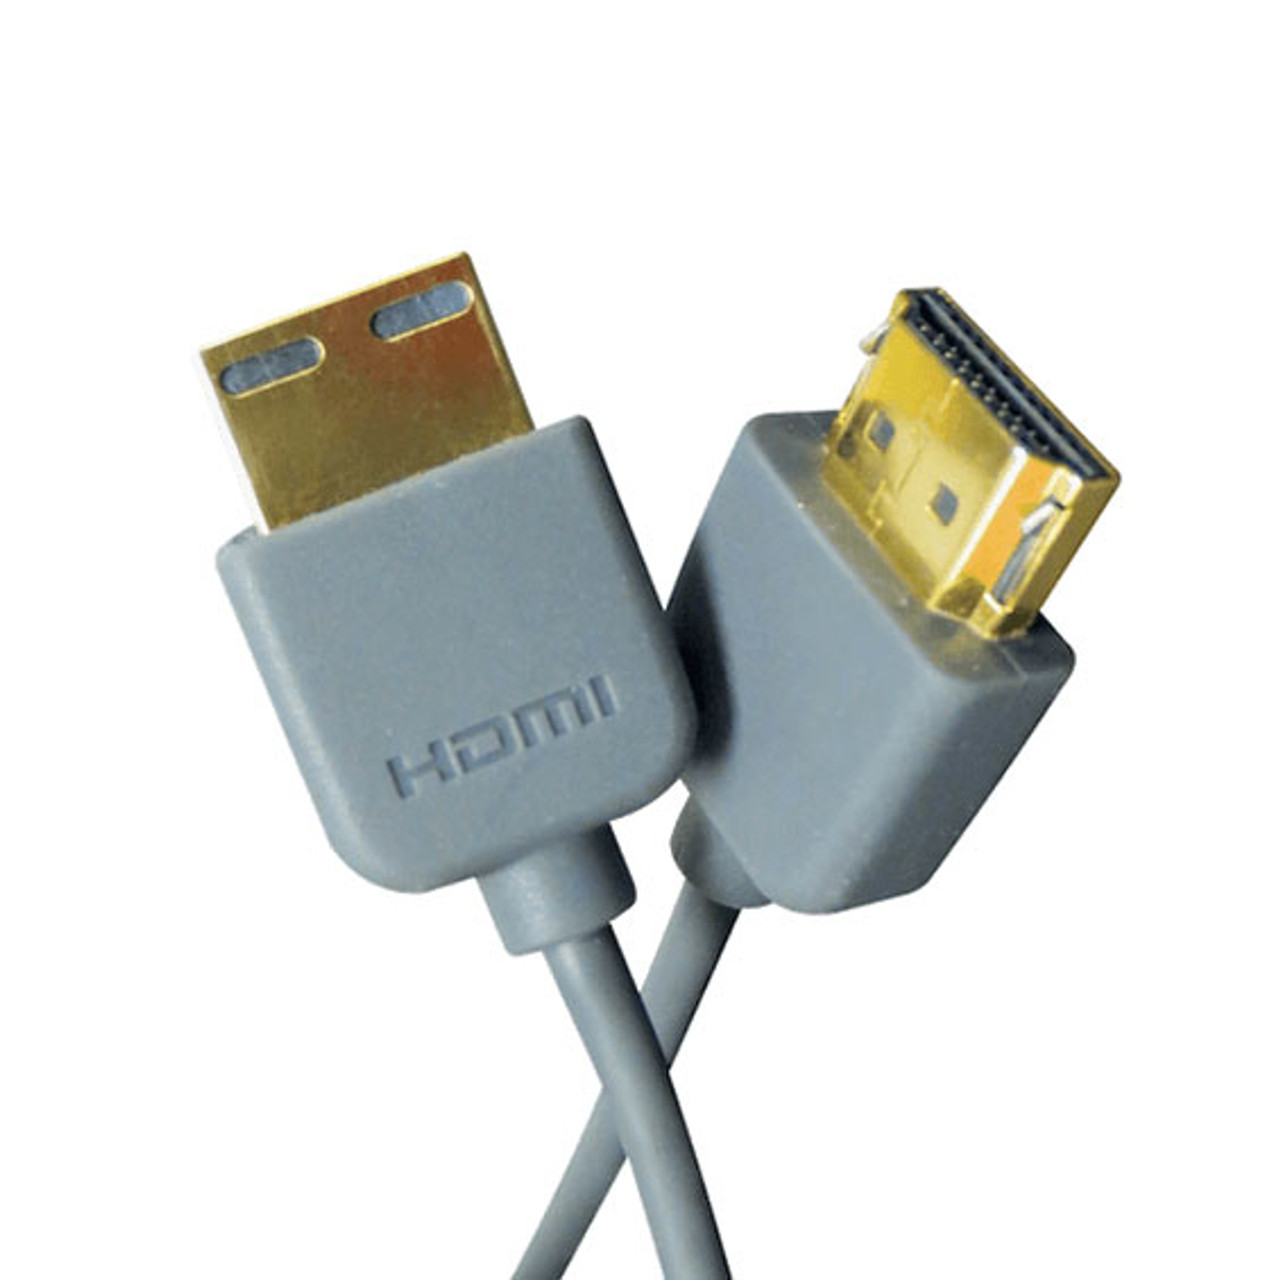 Comcast Dish Network DIRECTV 3D VZW 5 Foot HDMI 2.0 Cable in Gray ARC Fios Supports 4K@60Hz Ethernet HDTV UHD